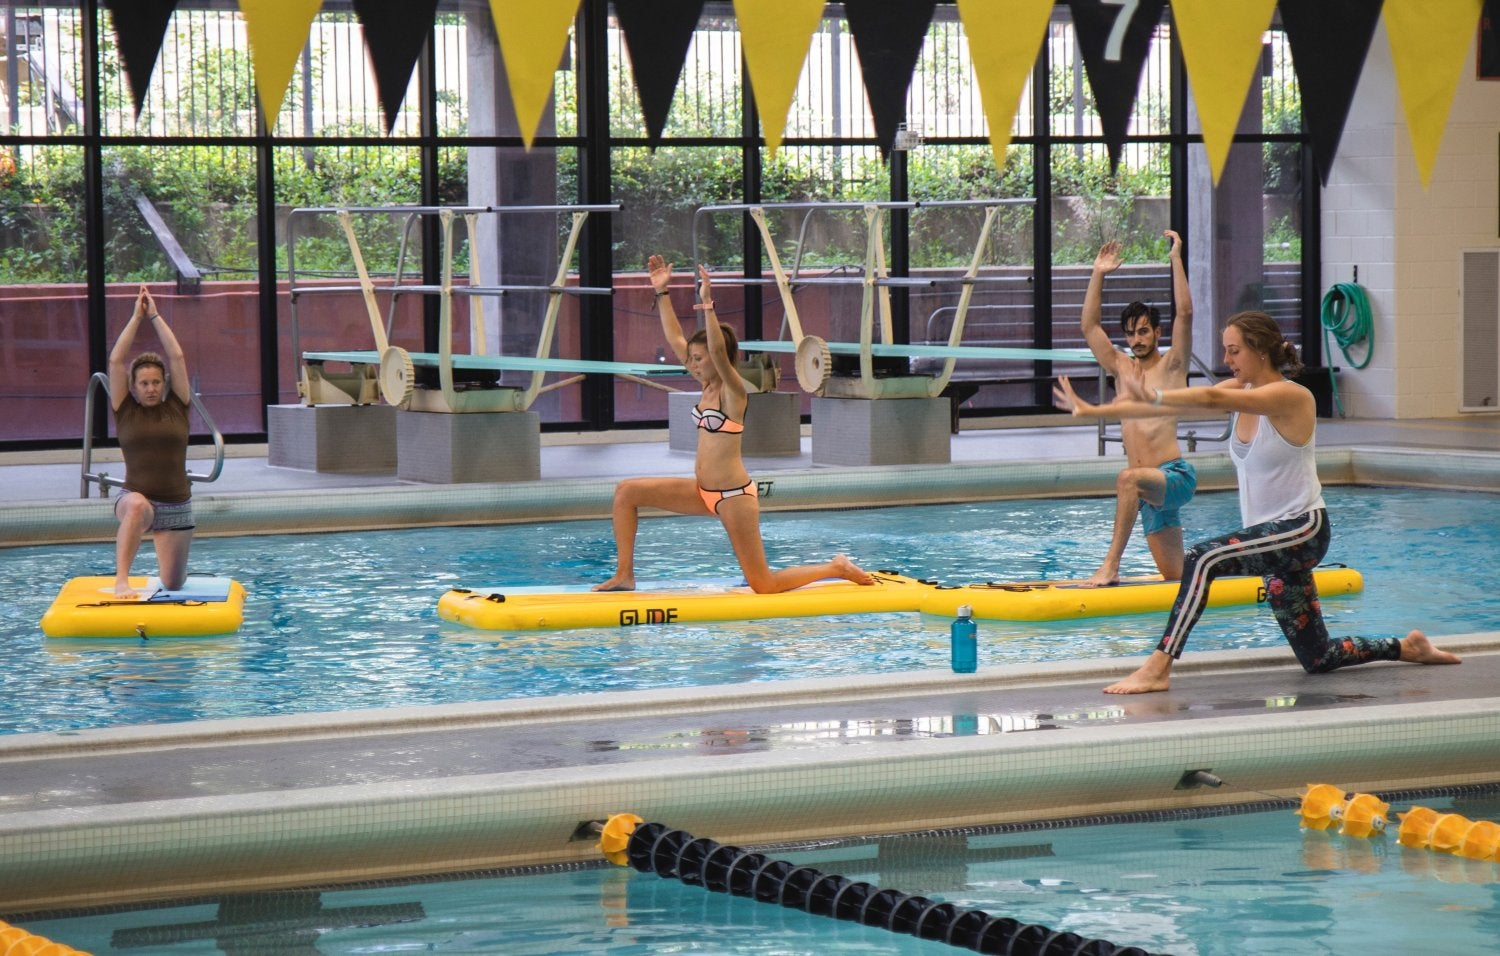 students on paddleboards in the pool doing a downward yoga poses